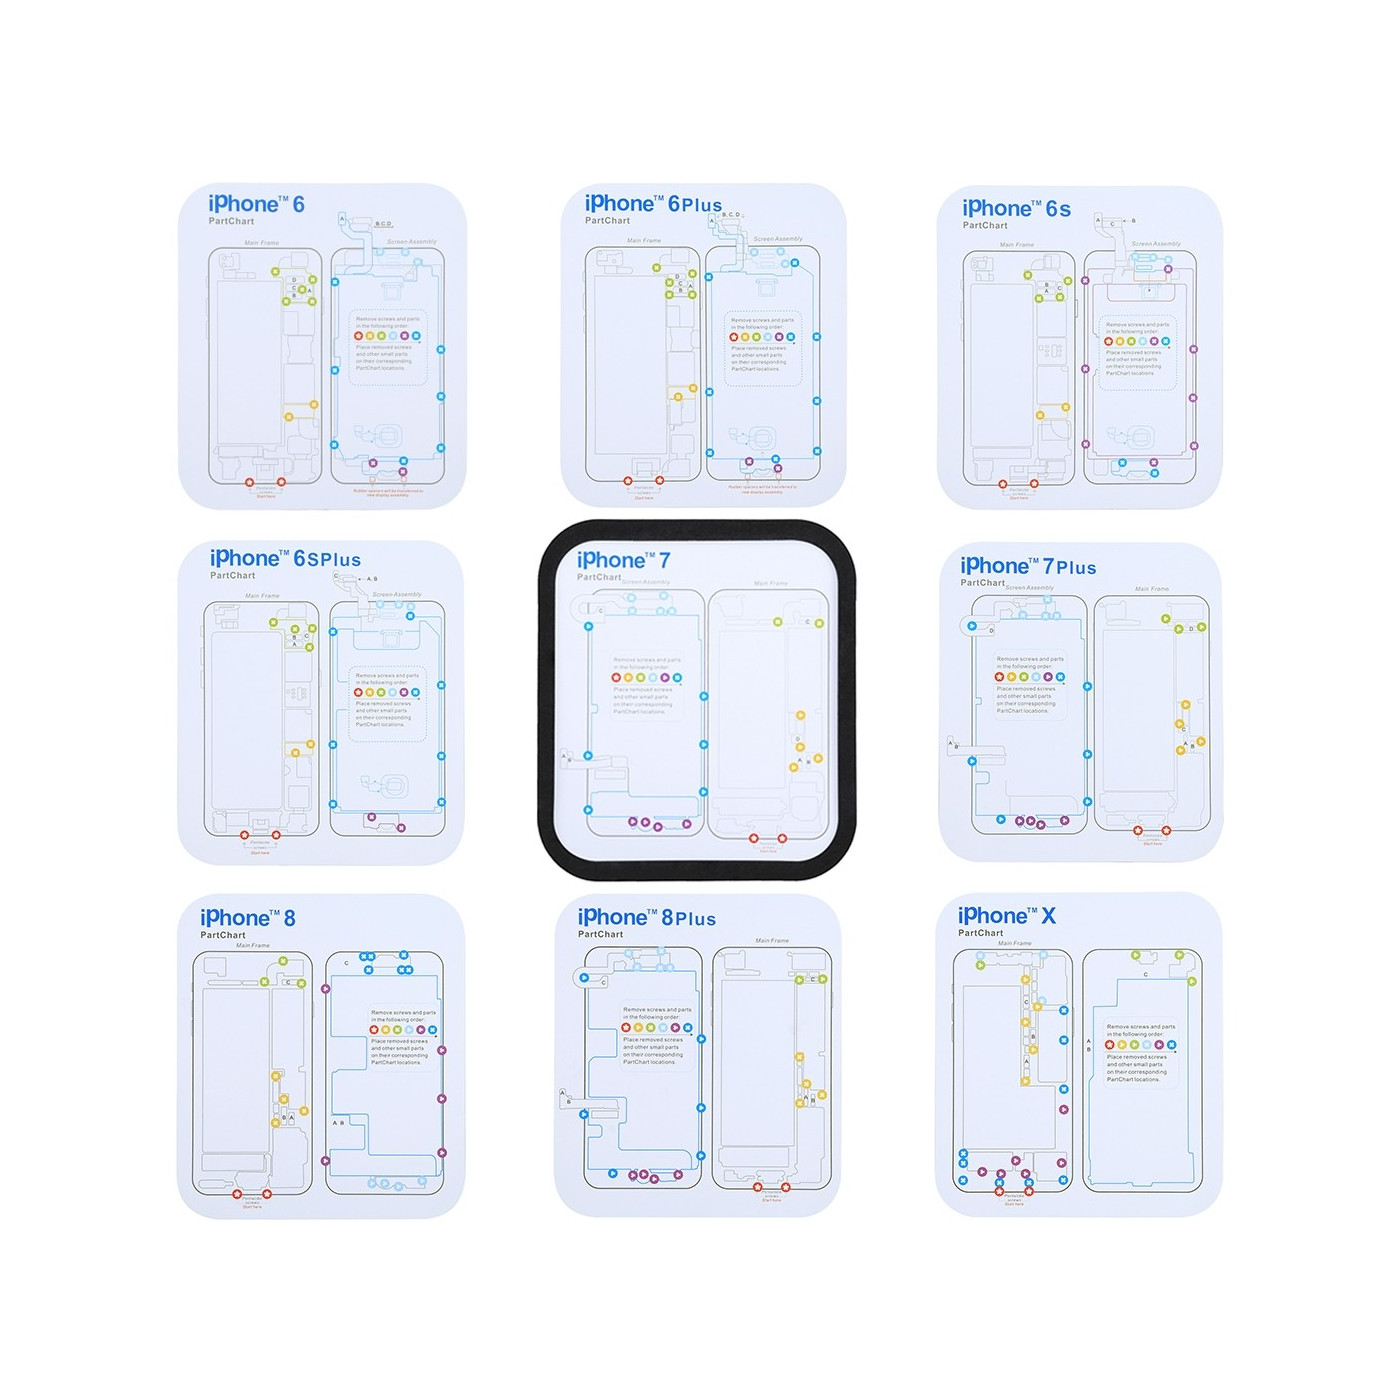 7 in 1 magnetic carpet map screws Iphone X - 8 - 7 - 6s - 6 and PLUS models